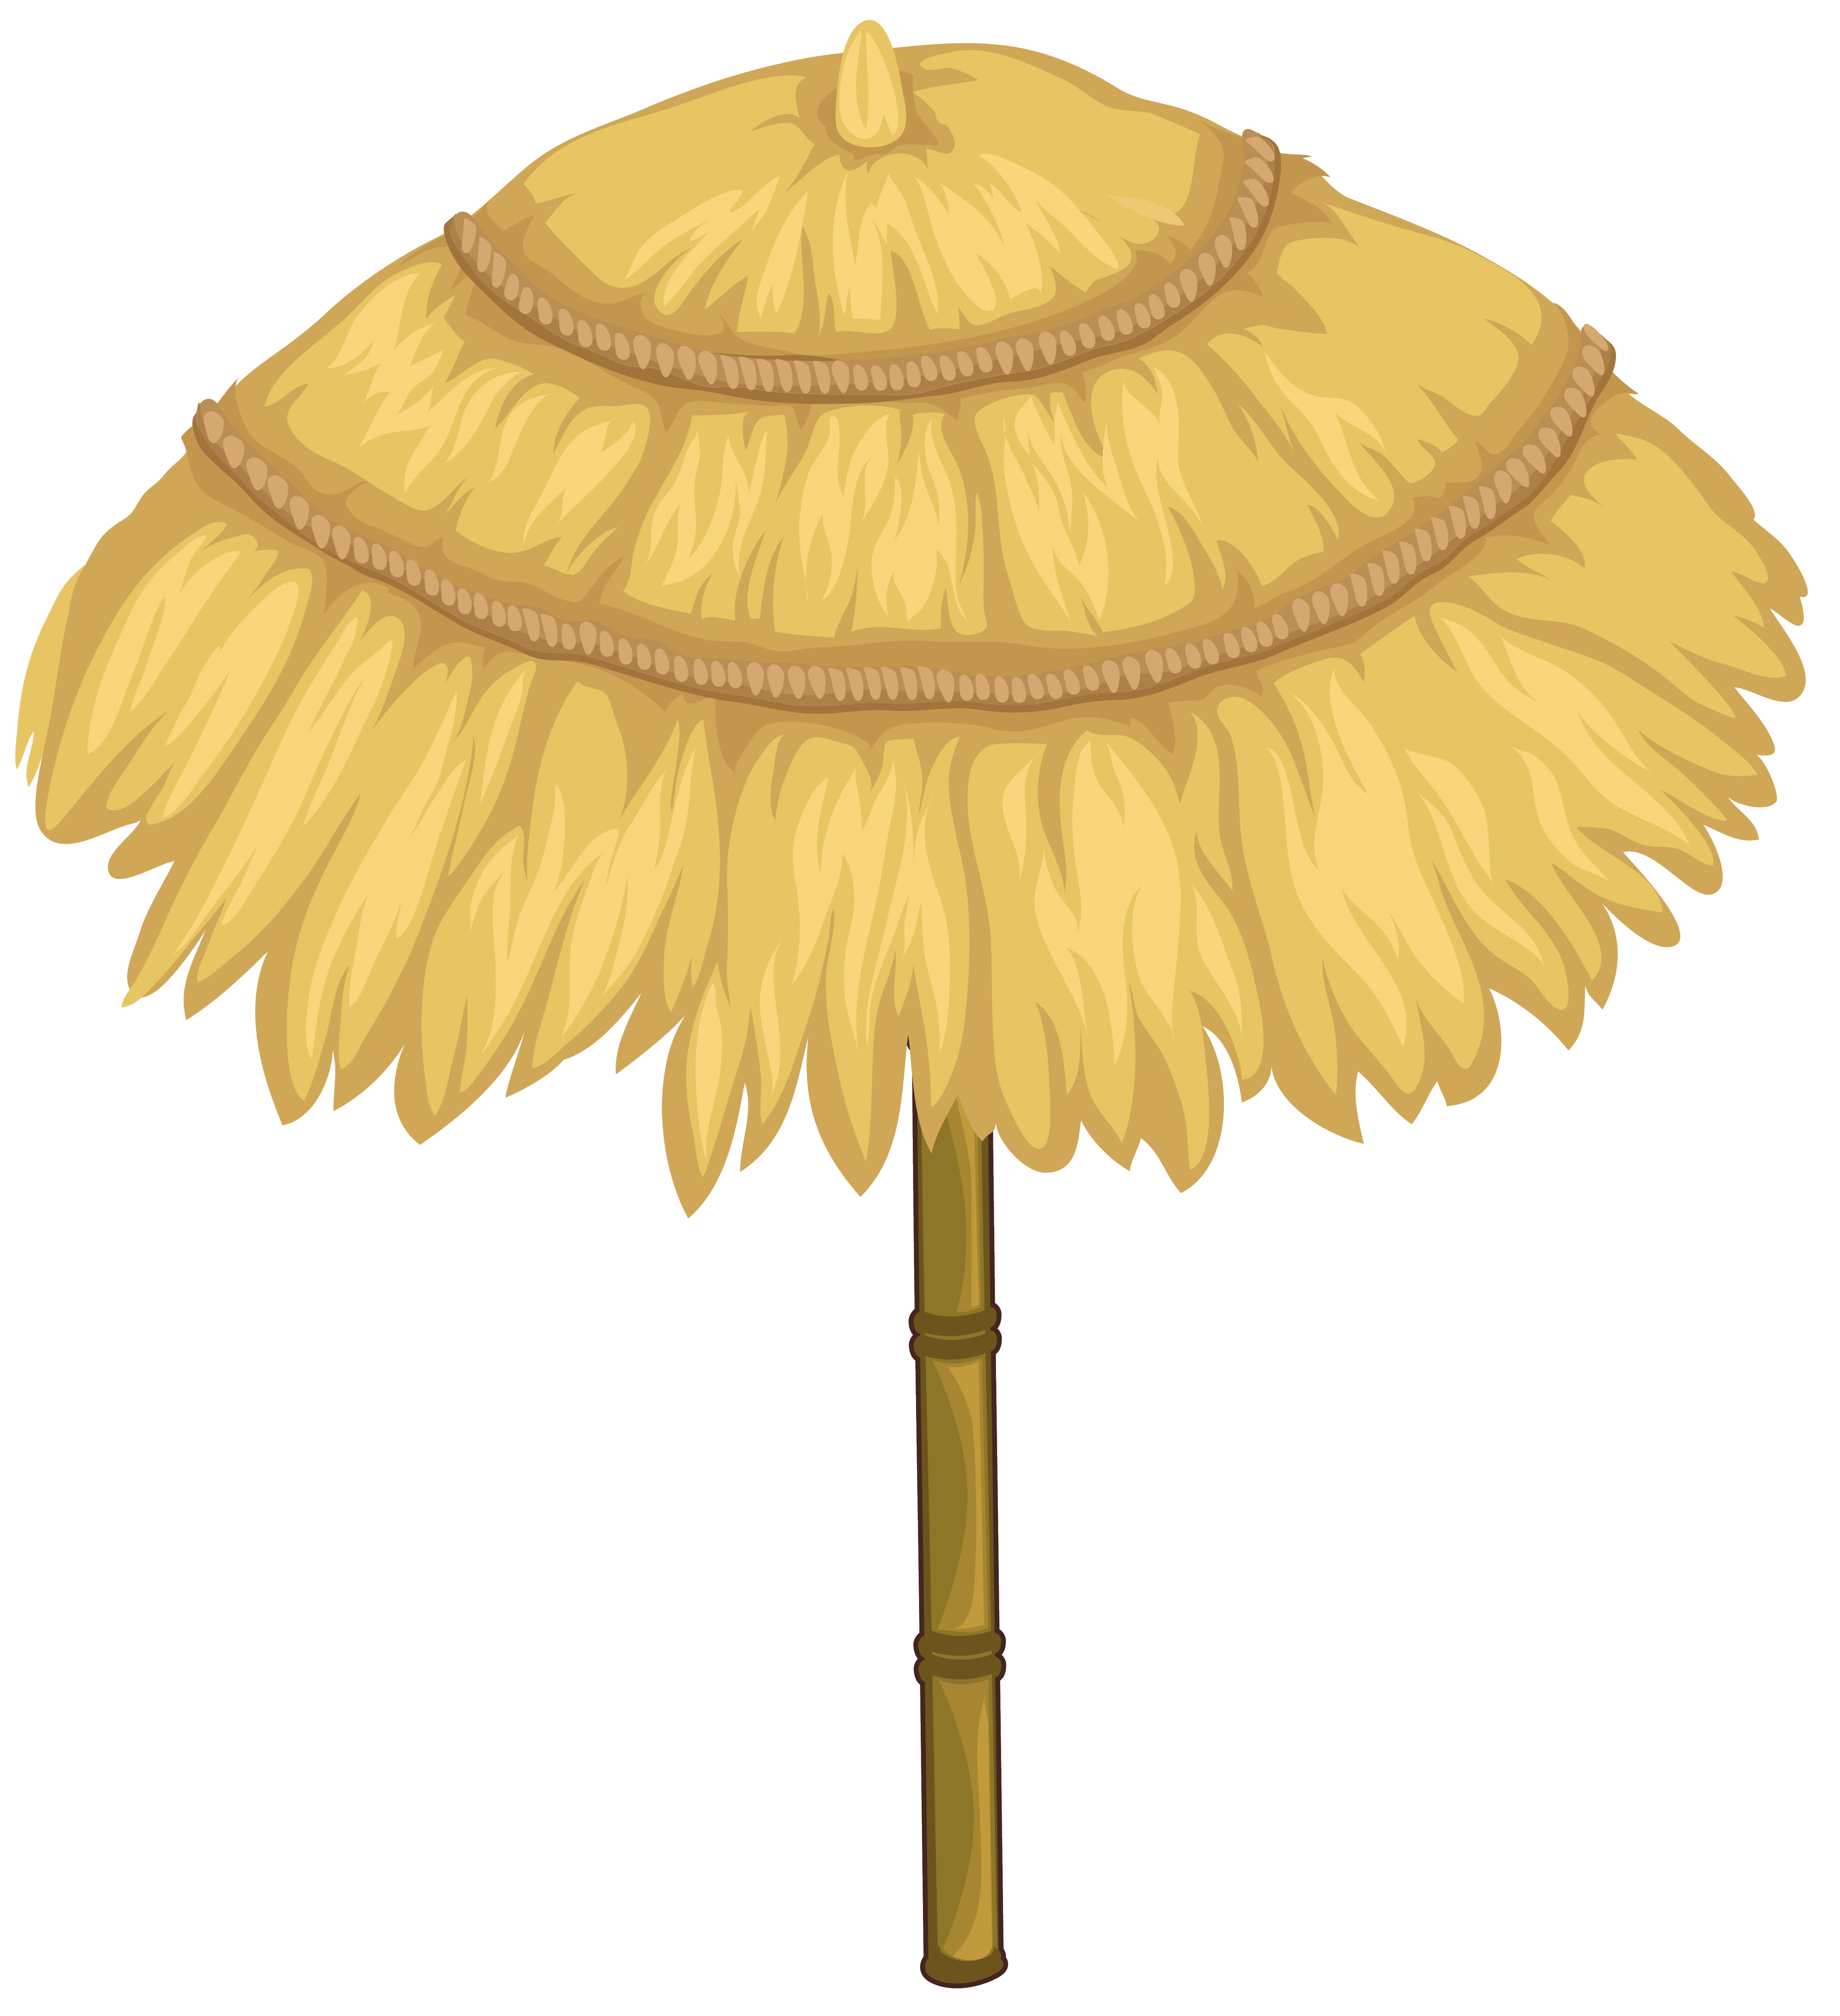 Thatched Umbrella PNG Clipart Image.